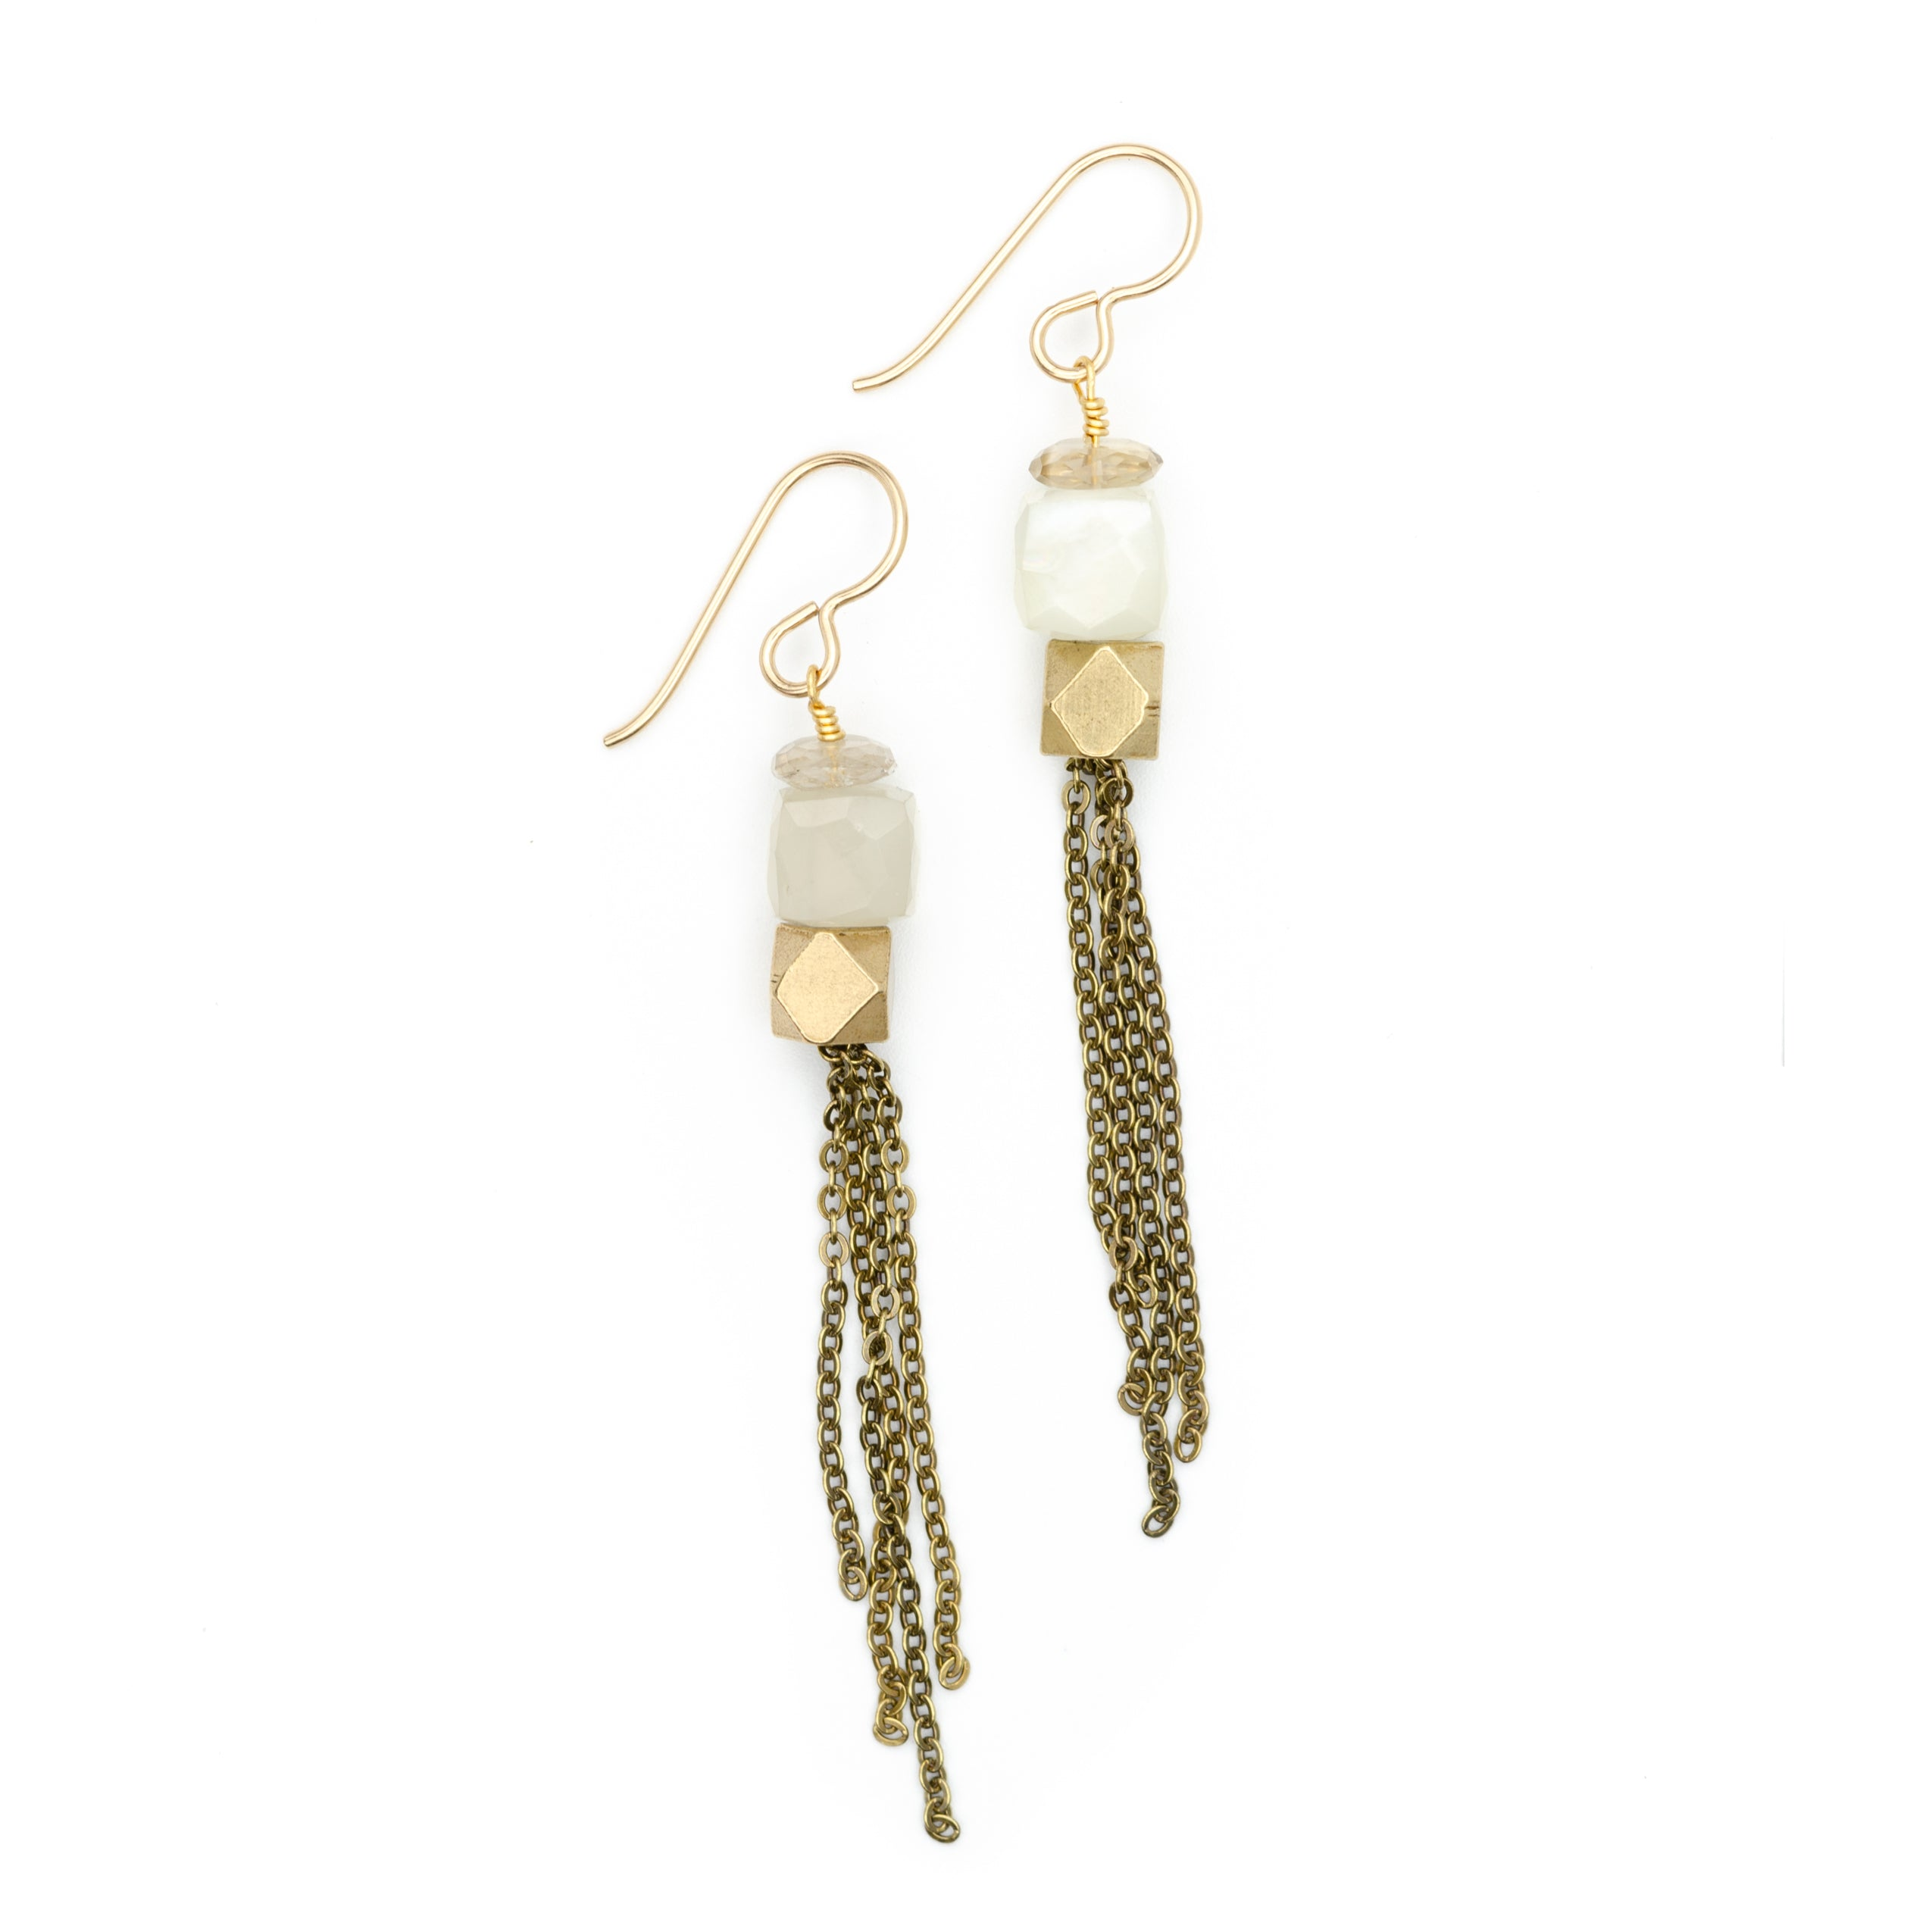 Cubist Tassel Earrings, Moonstone & Quartz